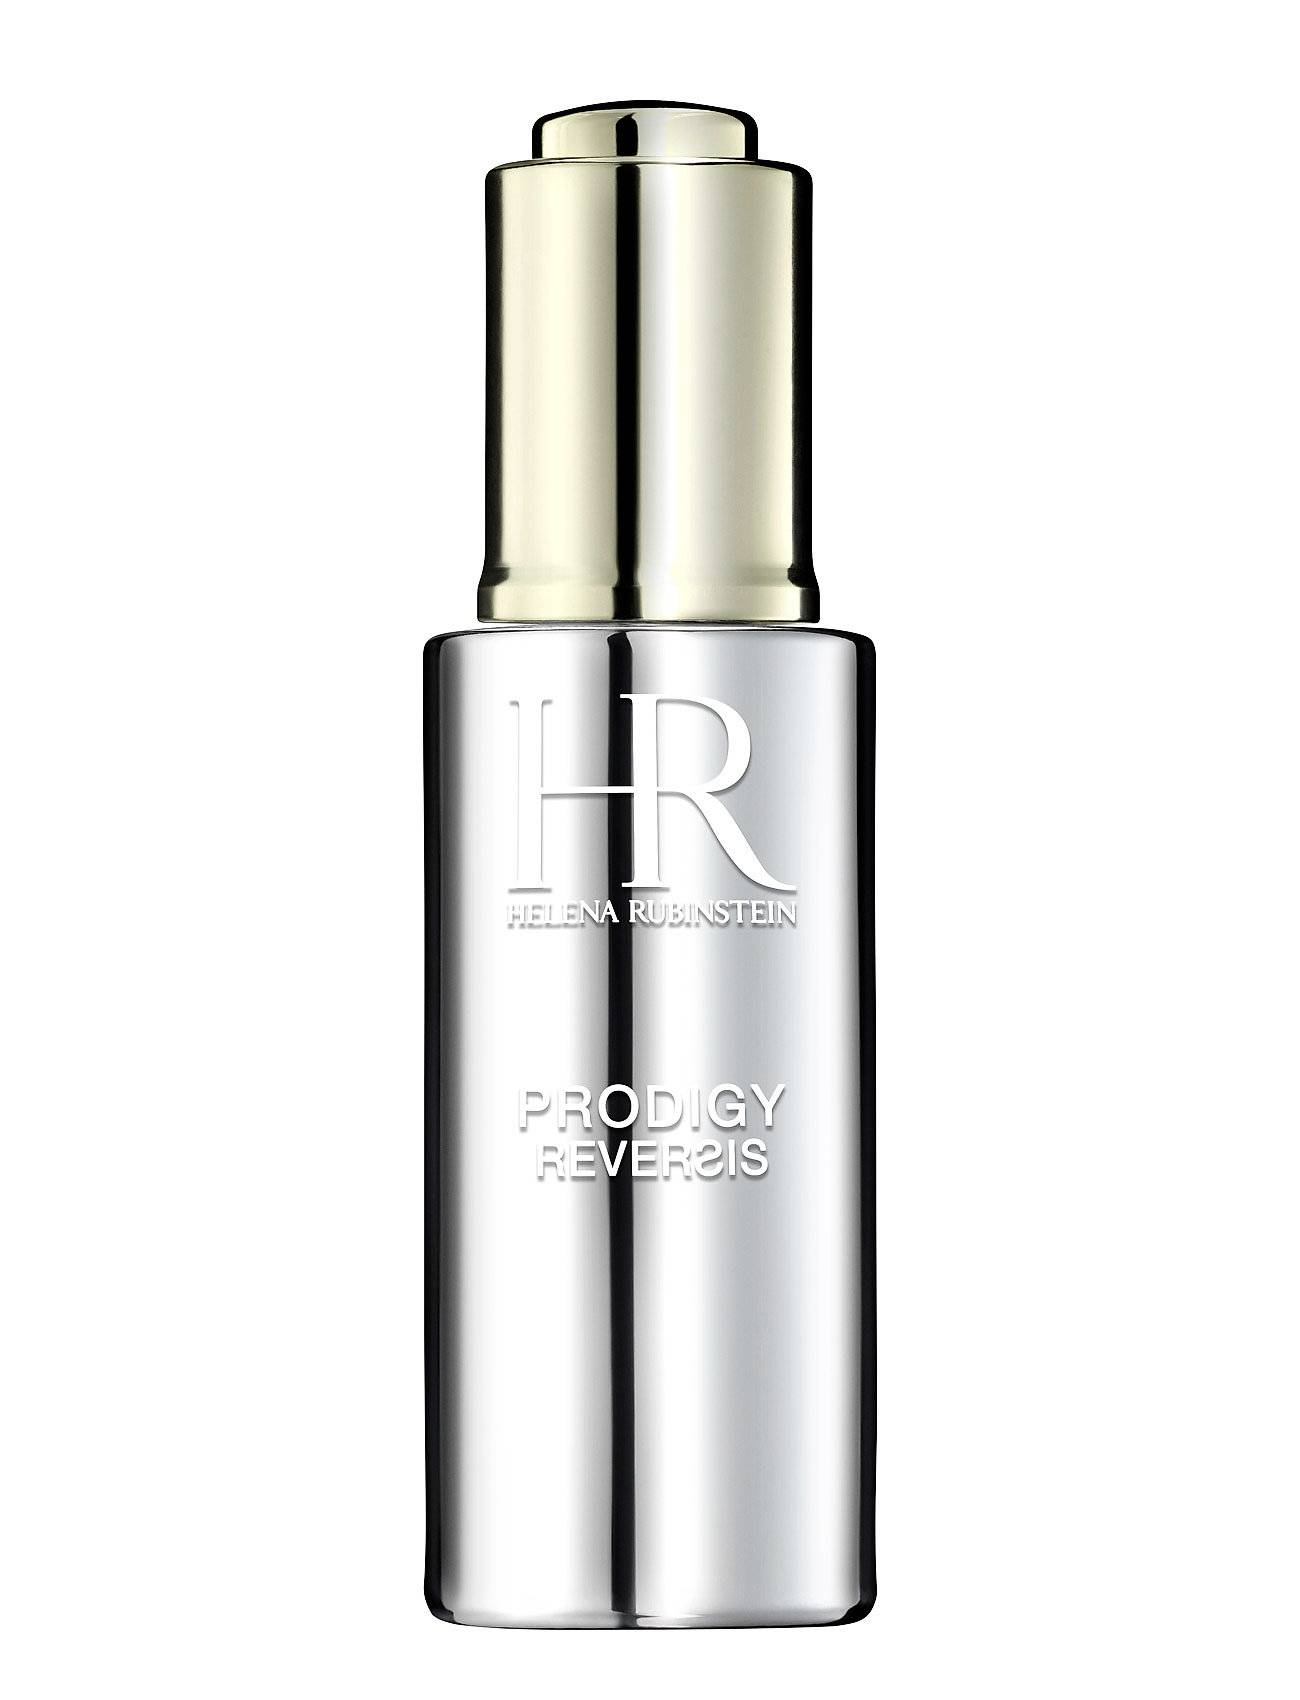 Helena Rubinstein Prodigy Reversis Subconcentrate 30 Ml